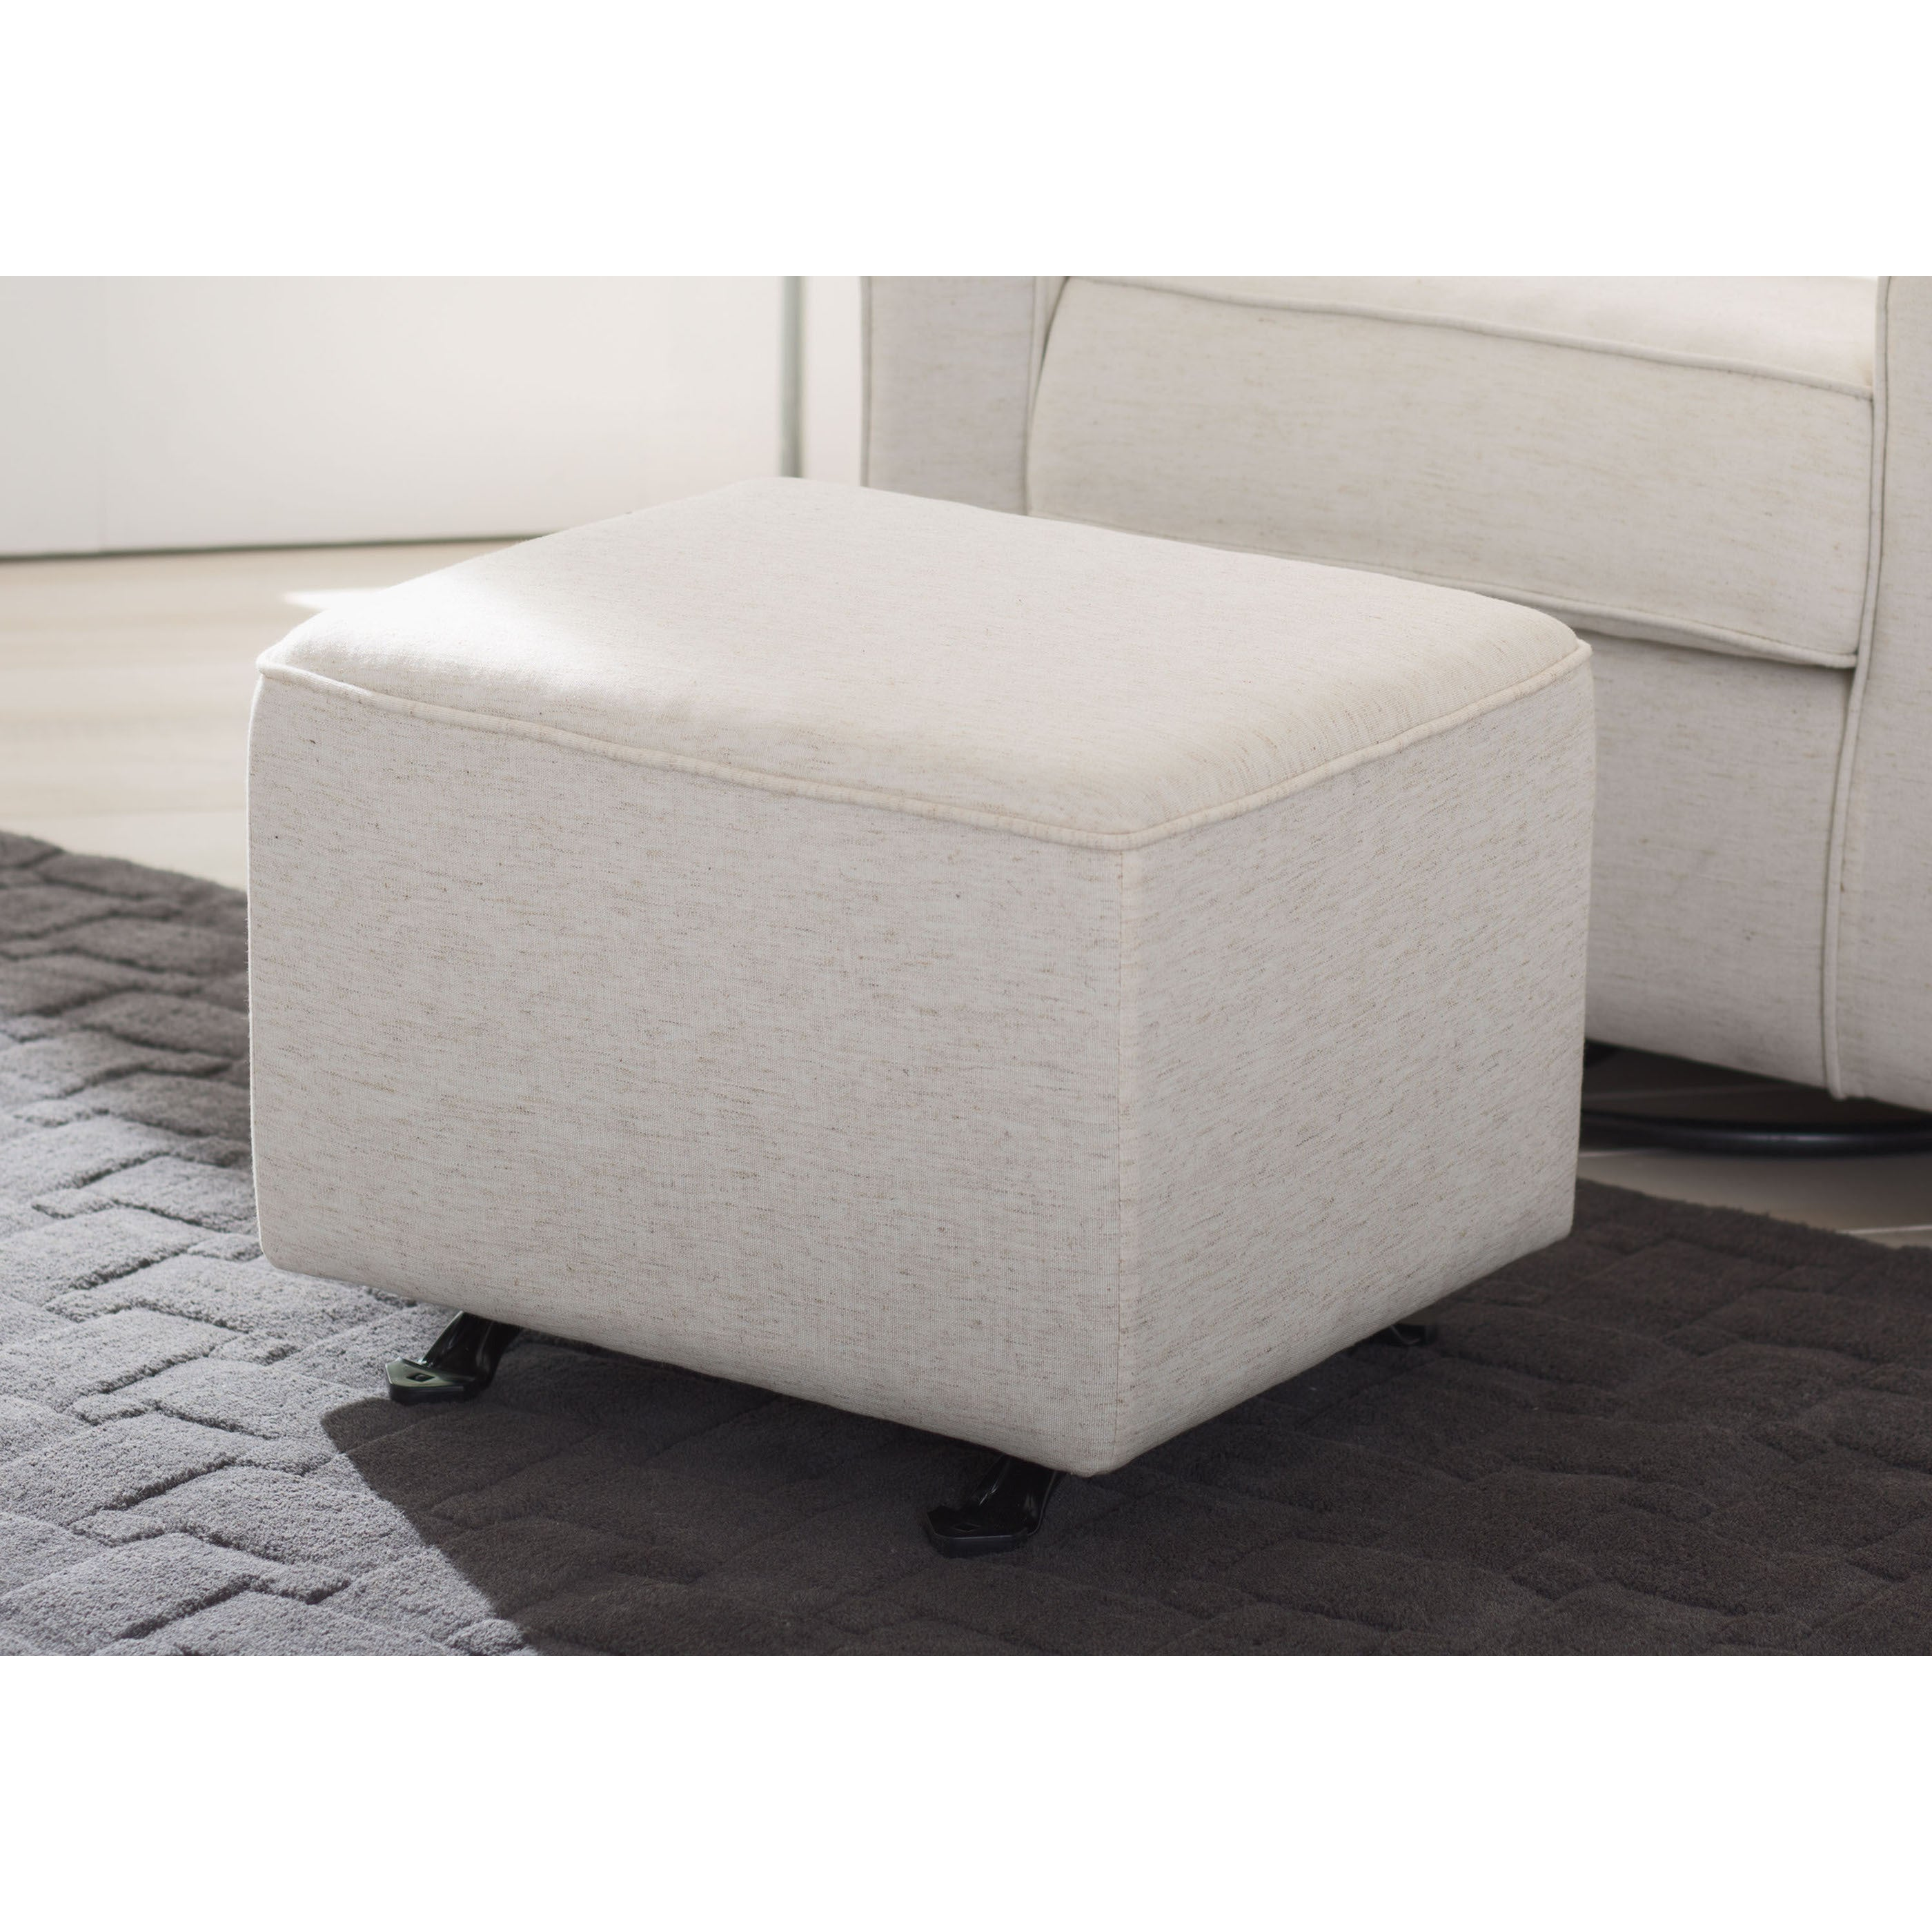 Sand Delta Children Nursery Gliding Ottoman Free Shipping Today 14221055